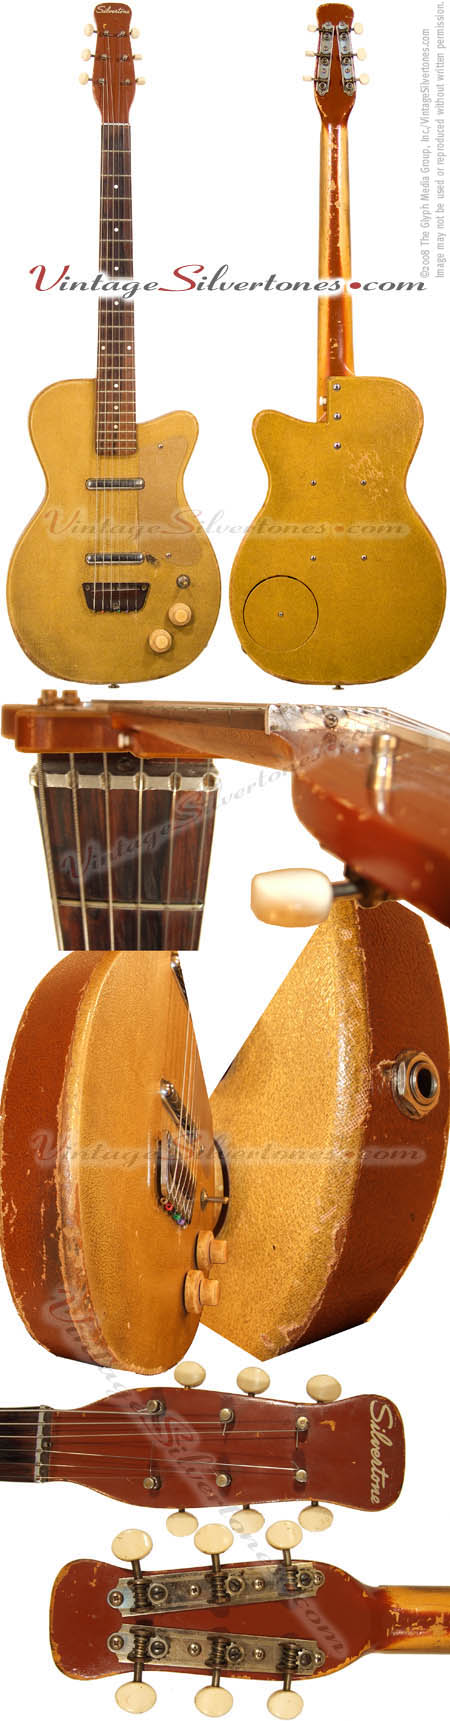 Silvertone 1359 made by Danelectro U2, two pickup, electric guitar, semi-hollow body, ginger tolex covered body with brown tolex binding, masonite body, lipstick pickup, made in 1956